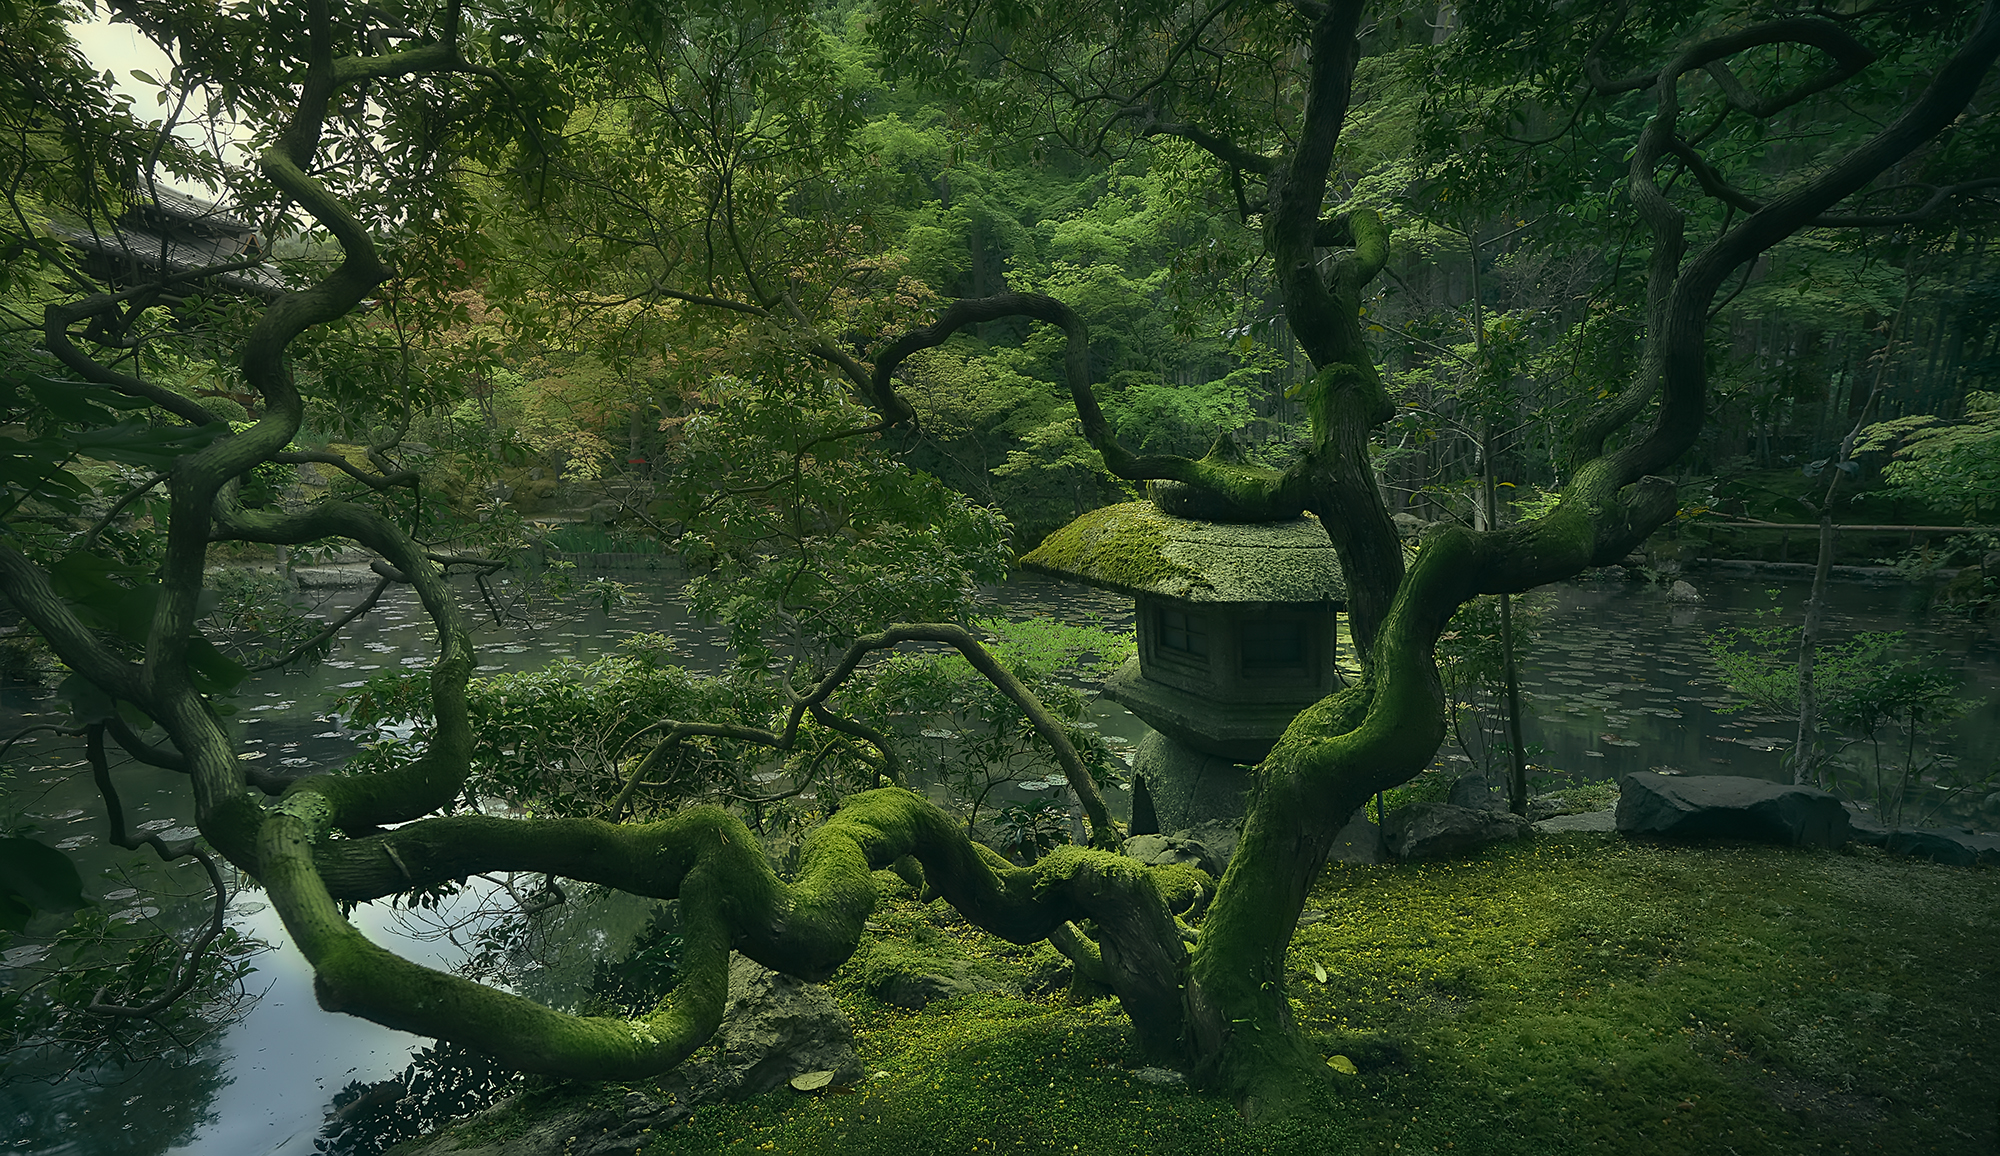 The Japanese Tree Despues